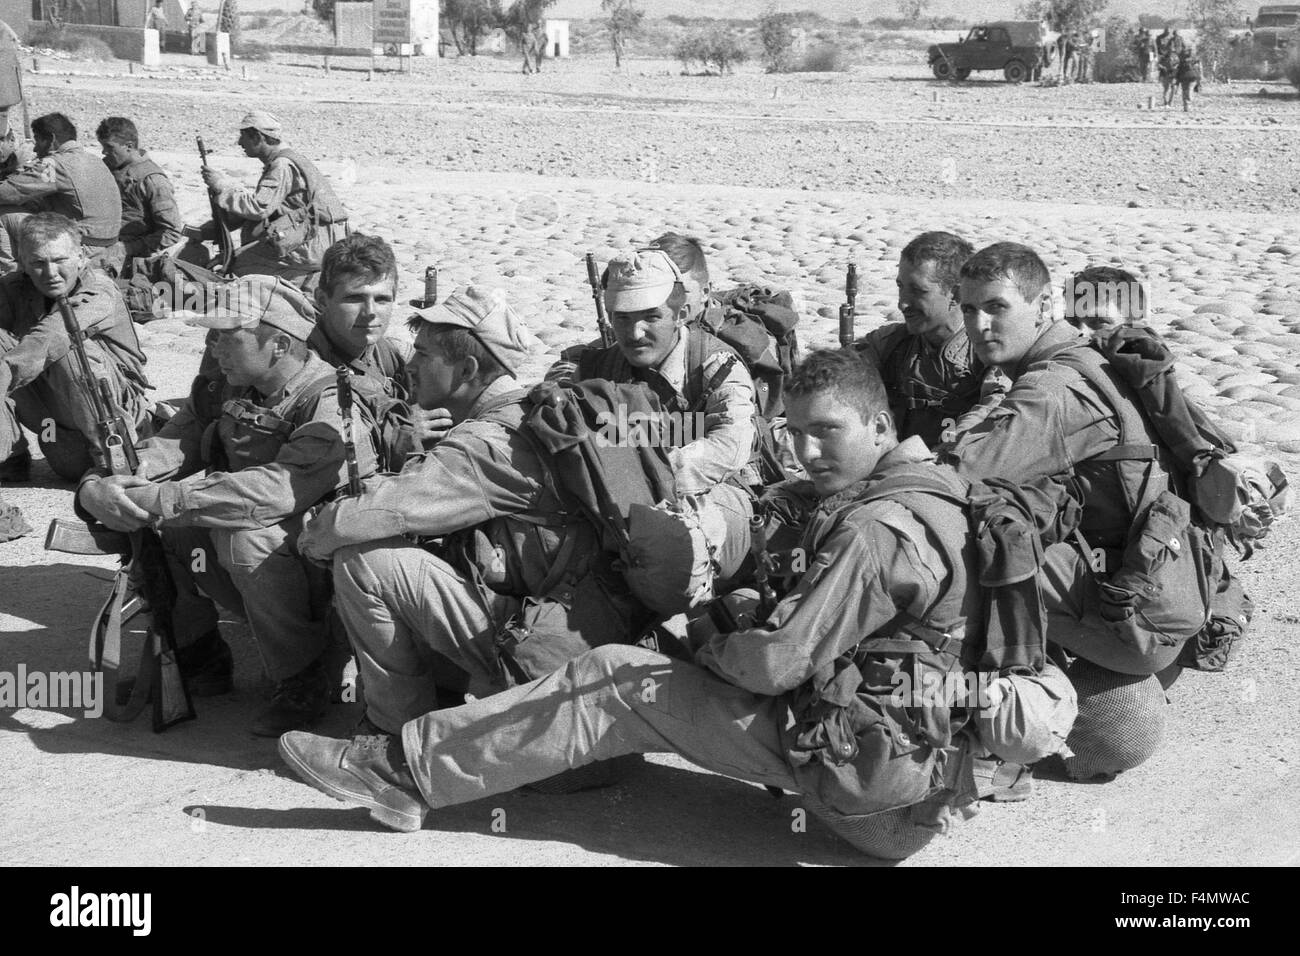 Soviet Afghanistan war - Page 6 Afghanistan-the-soviet-soldiers-in-kandahar-F4MWAC